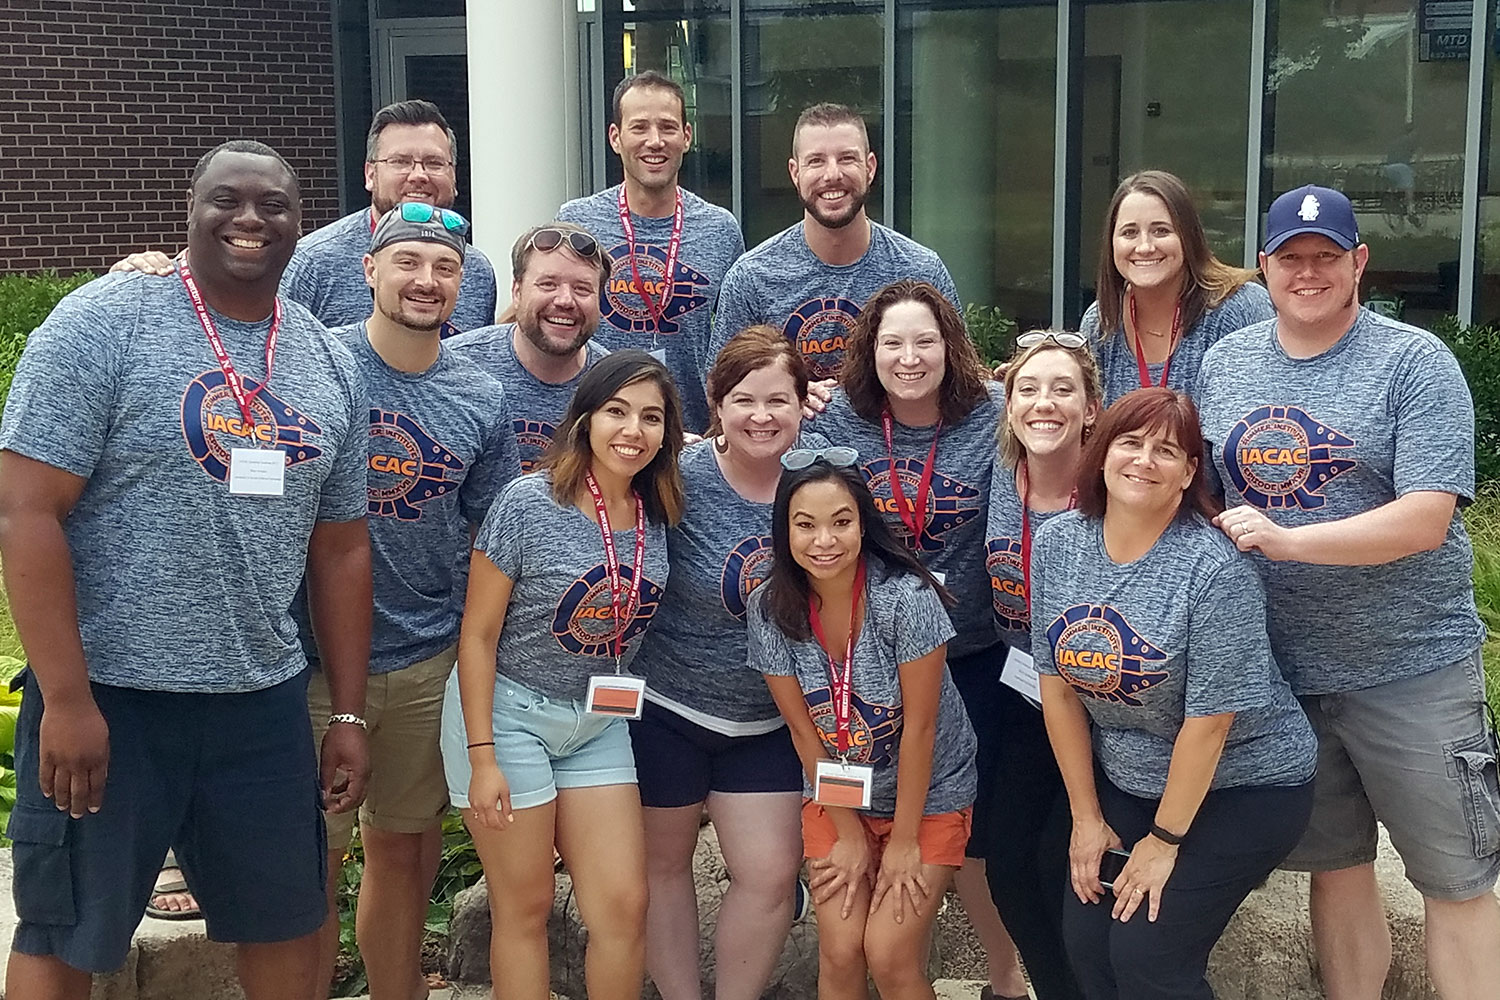 Summer Institute: Laying The Foundation For An Exceptional Vocation